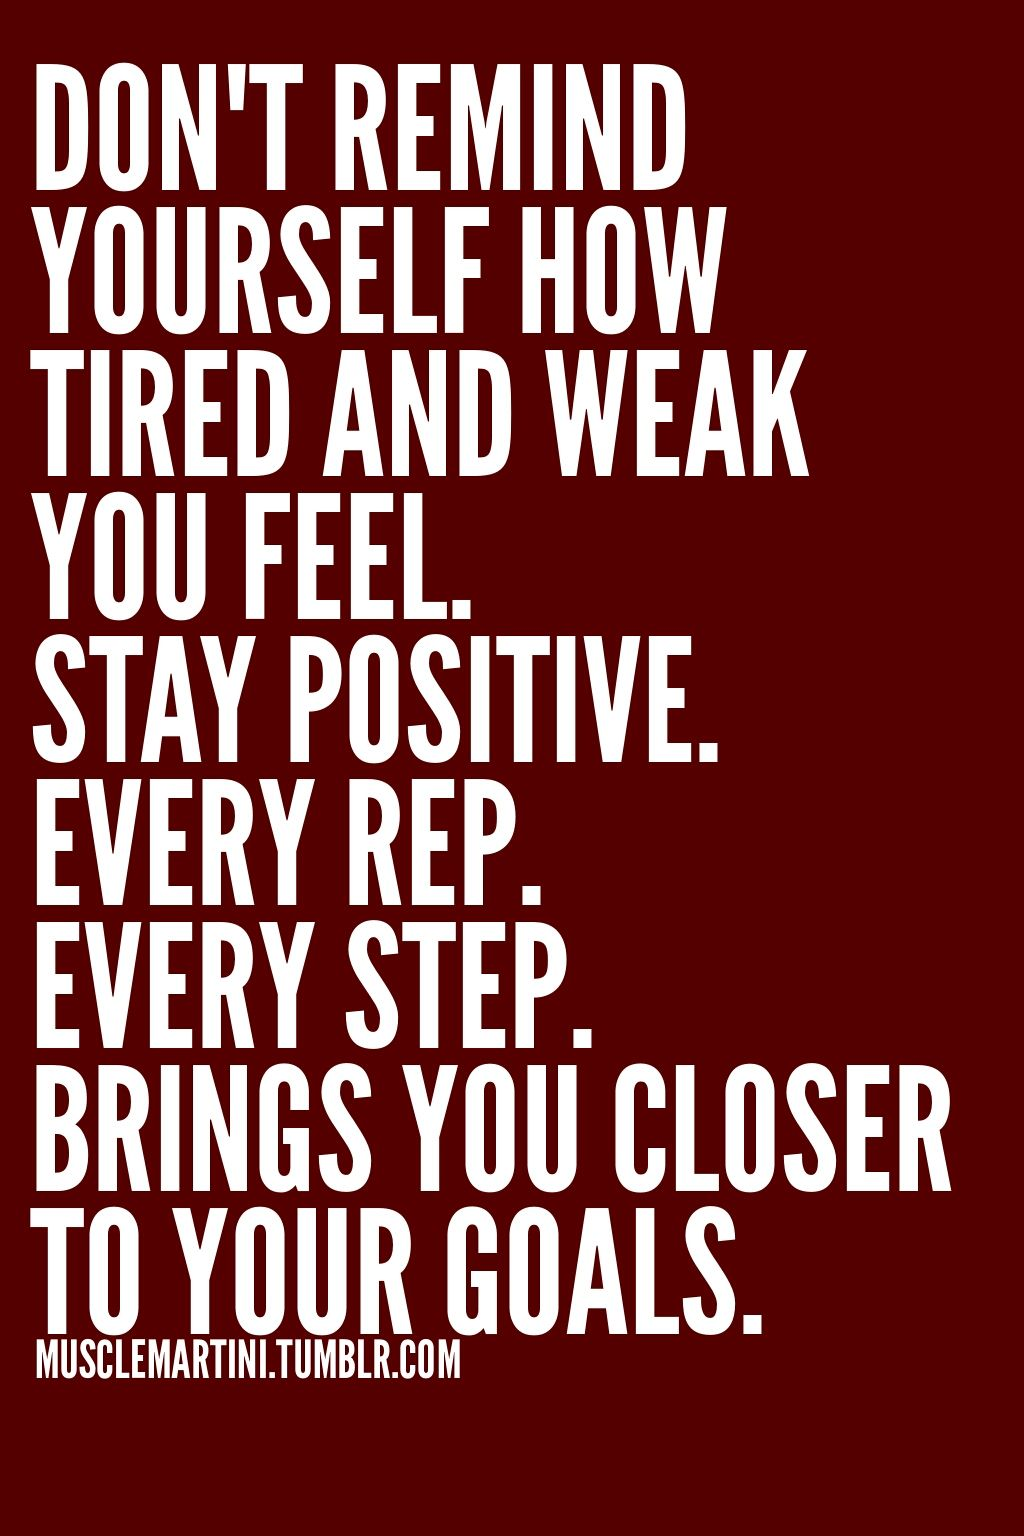 Positive Workout Quotes Pinkelly Sp On Motivation  Pinterest  Staying Positive